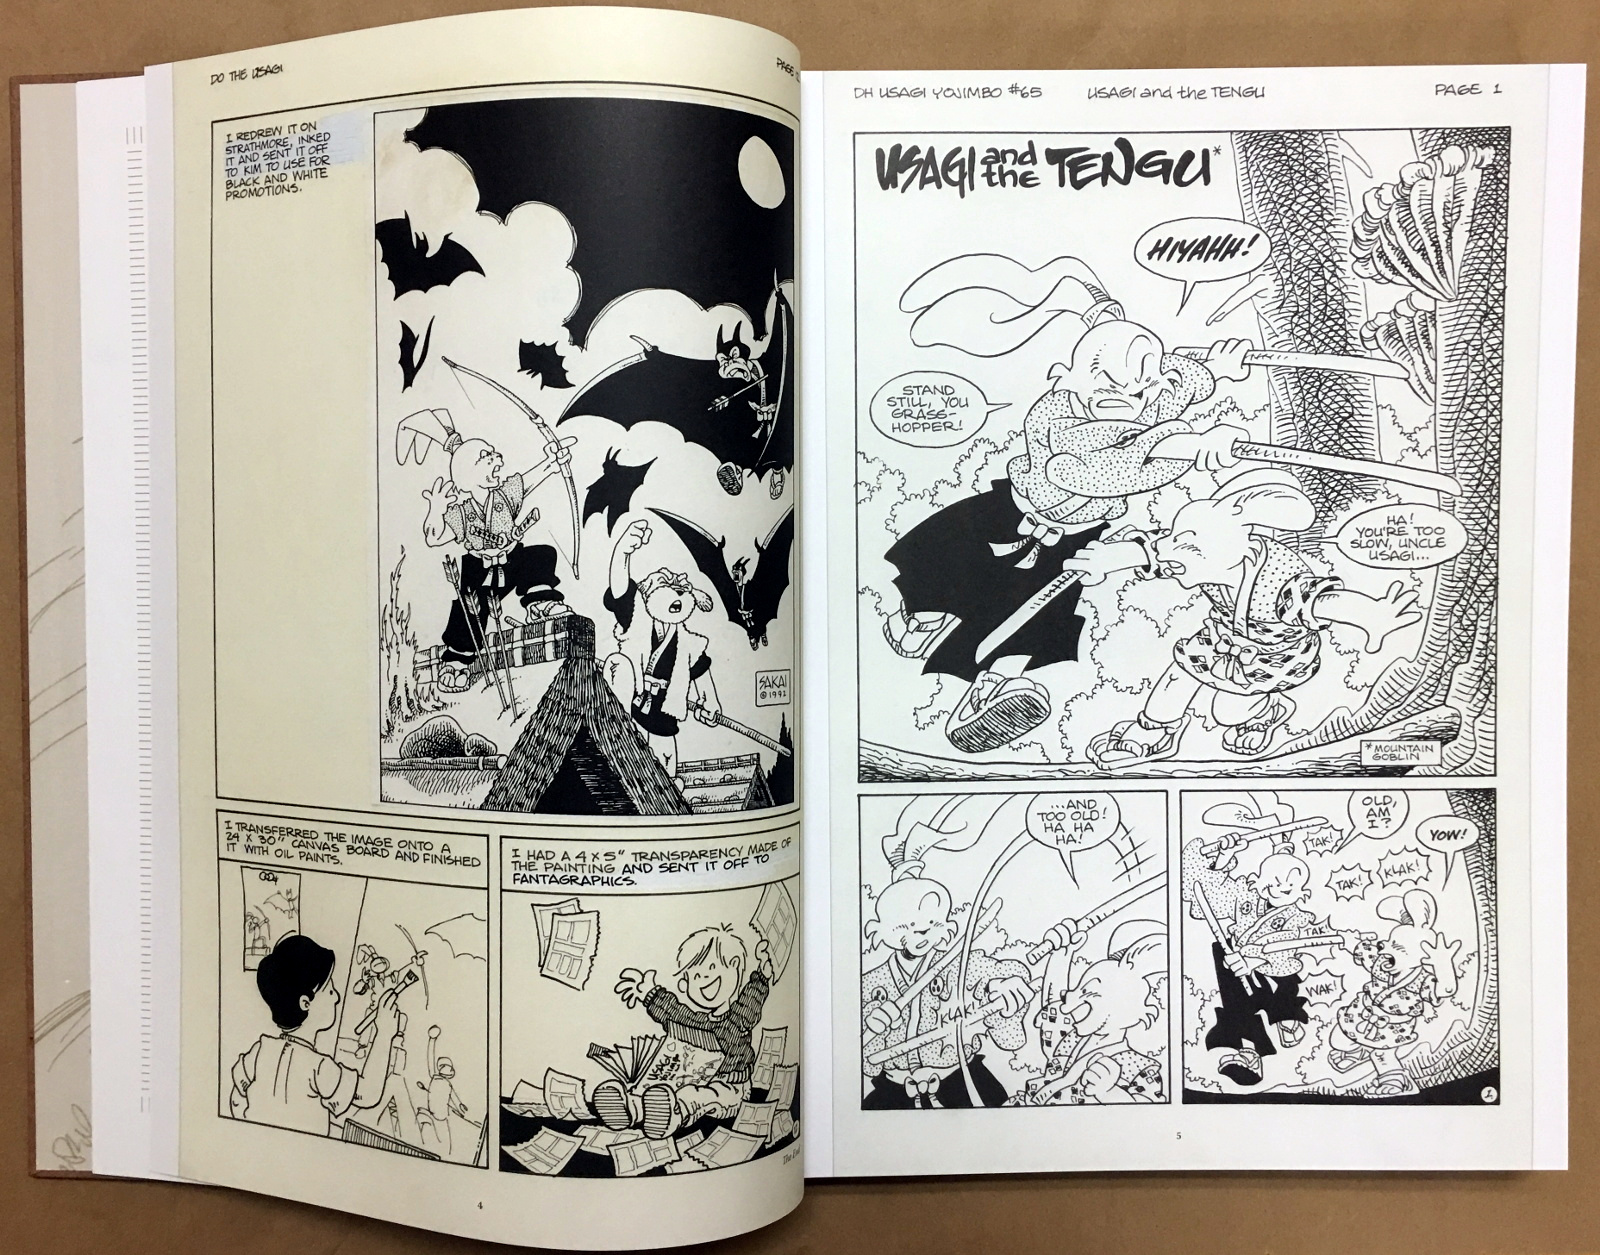 Usagi Yojimbo: The Artist and Other Stories Gallery Edition 10